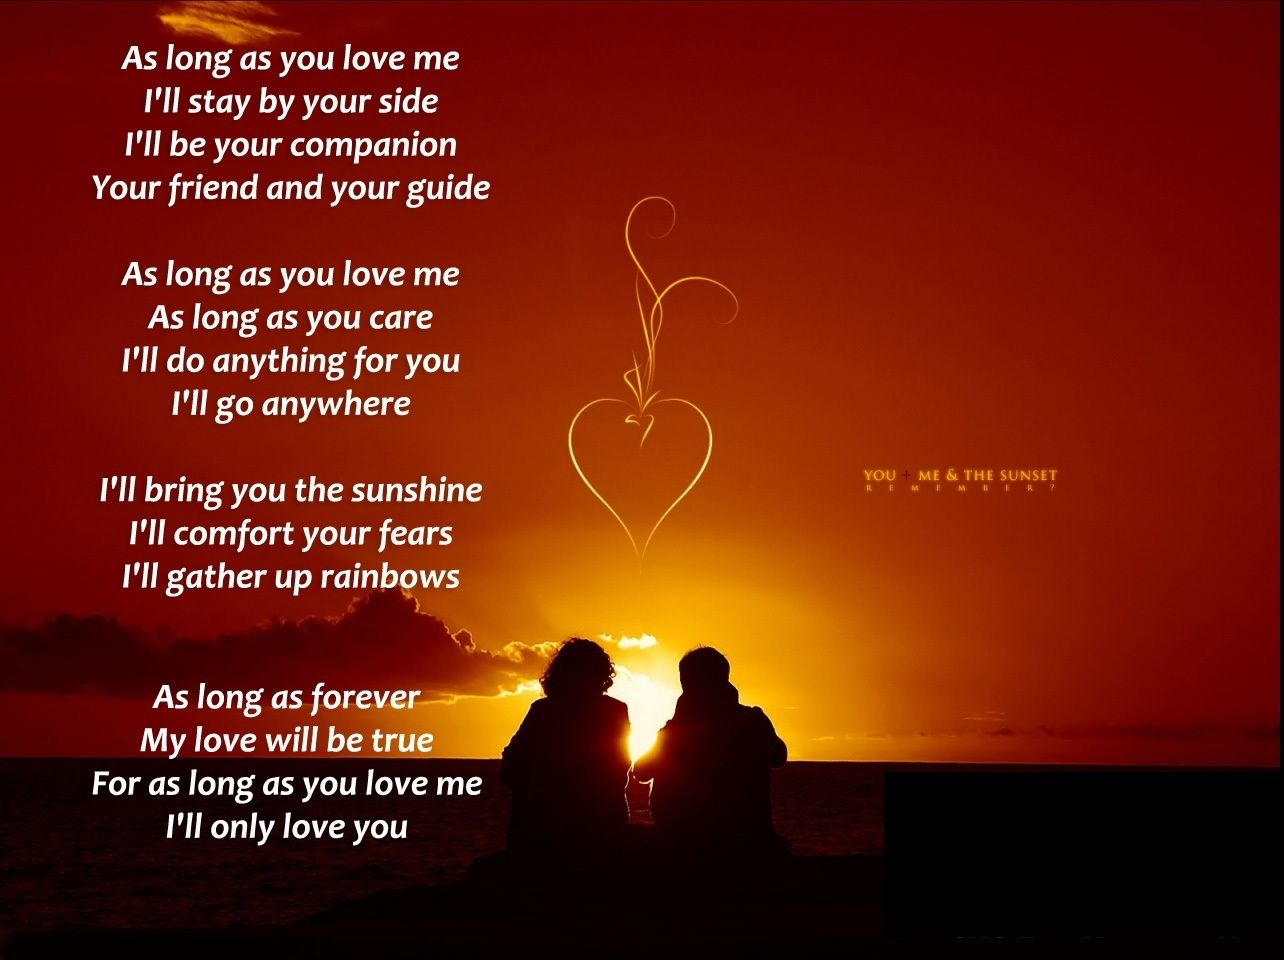 New free Wallpaper of love poems Free free Wallpaper of love poems Download Download New